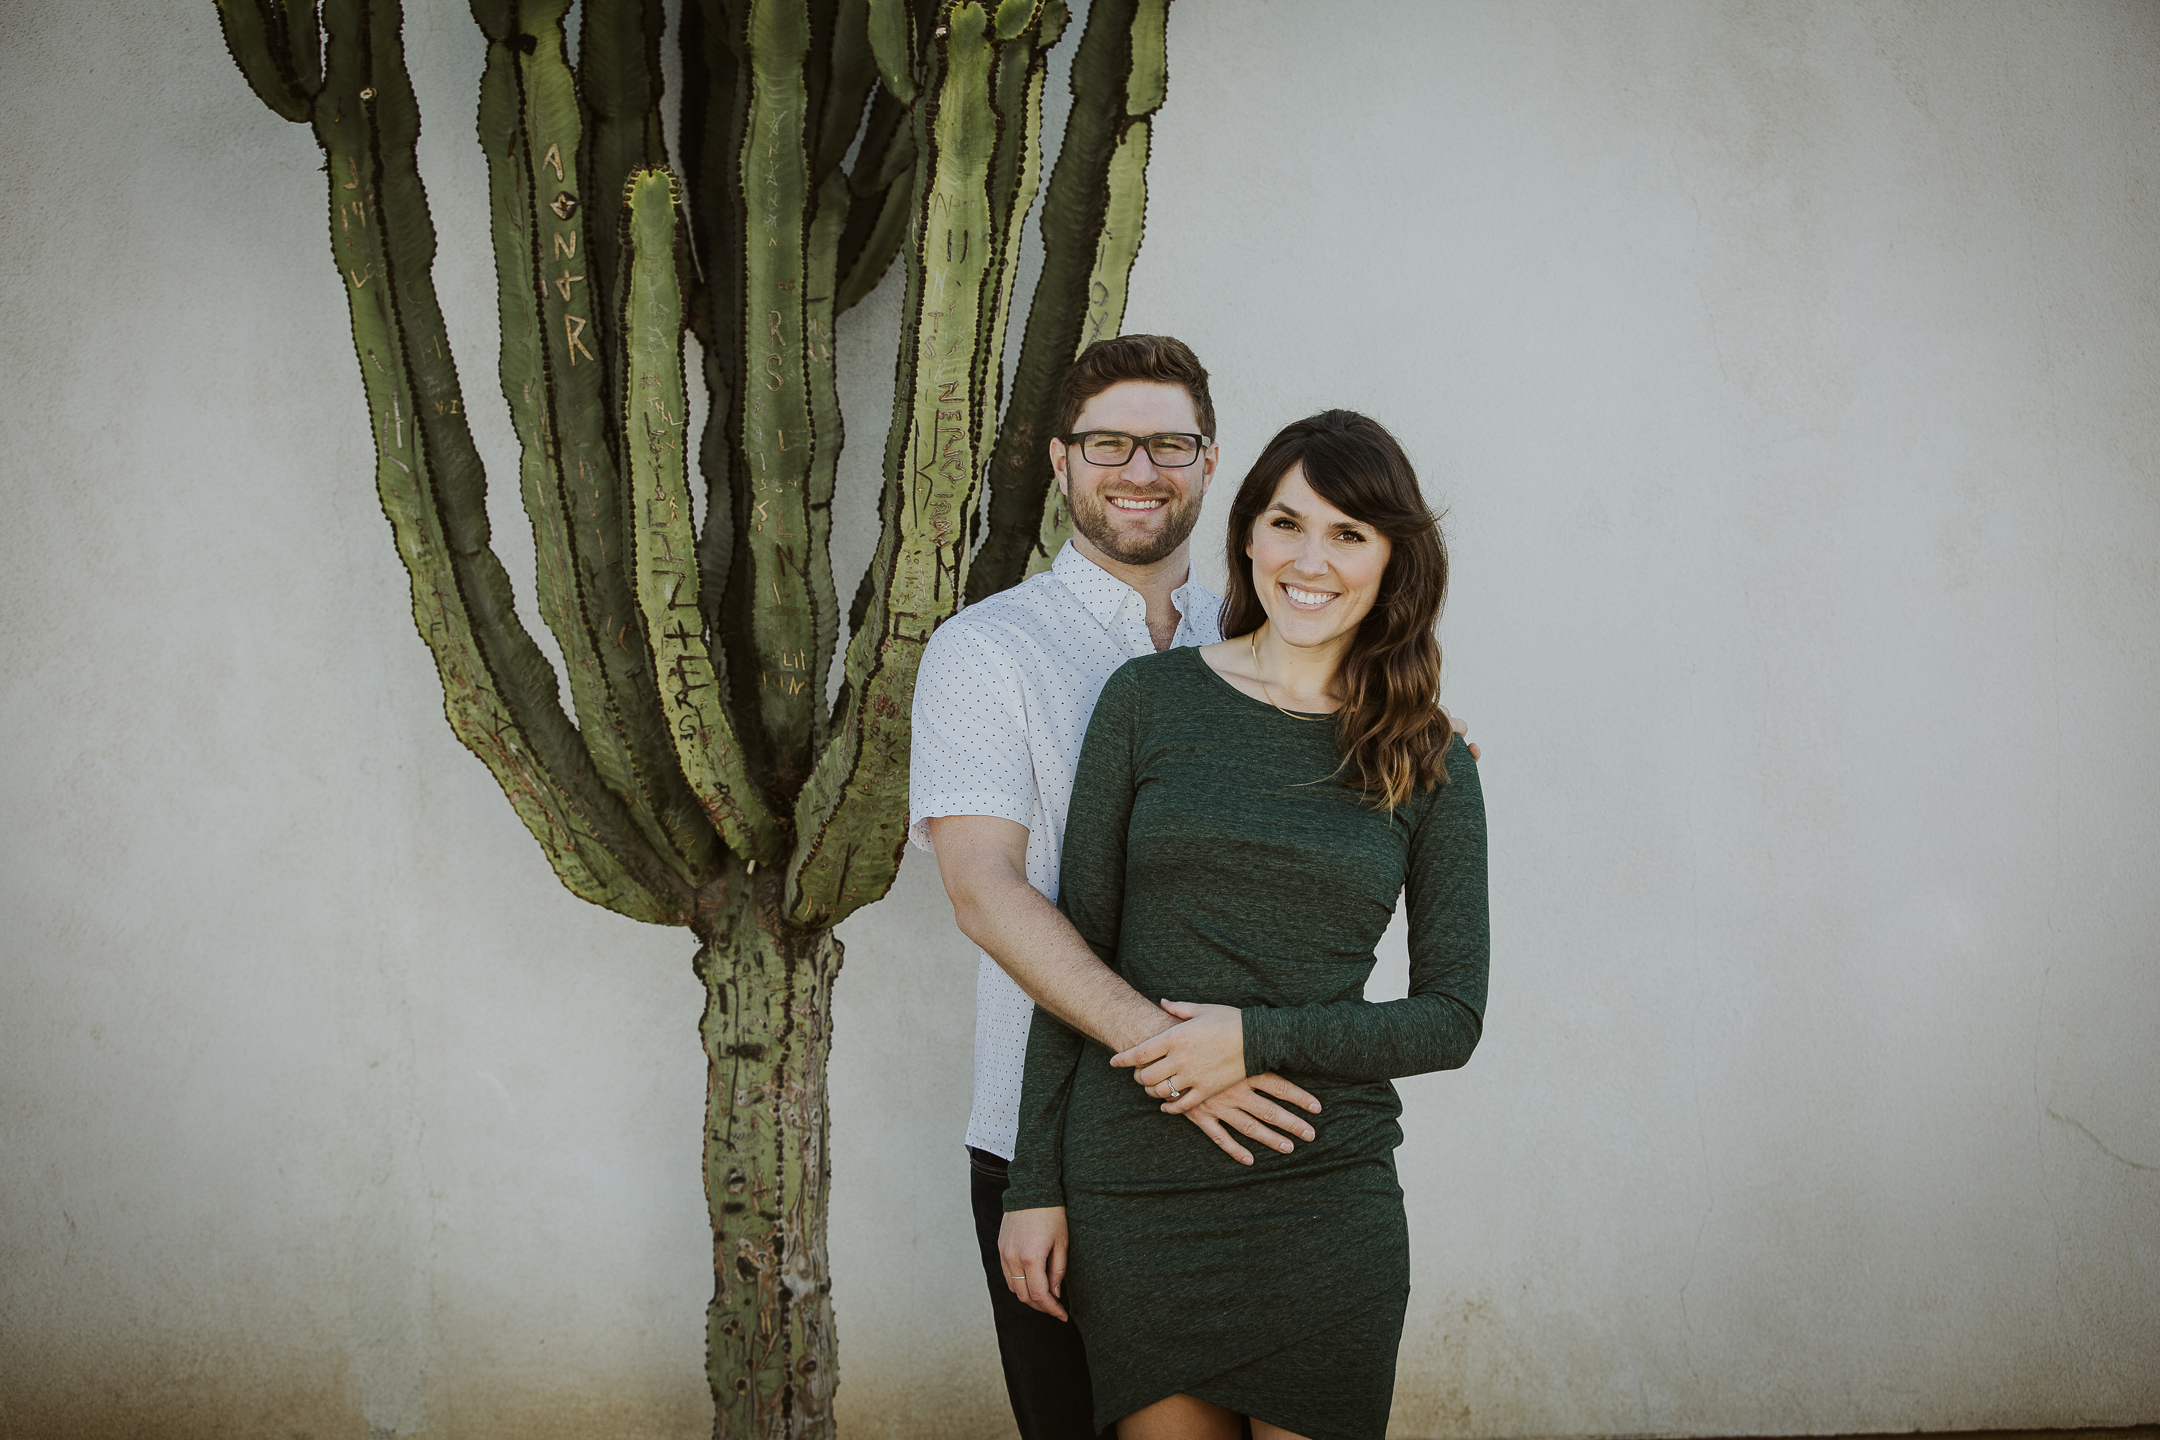 ENGAGEMENT photos: Balboa Park, Old Town, La Jolla Cove